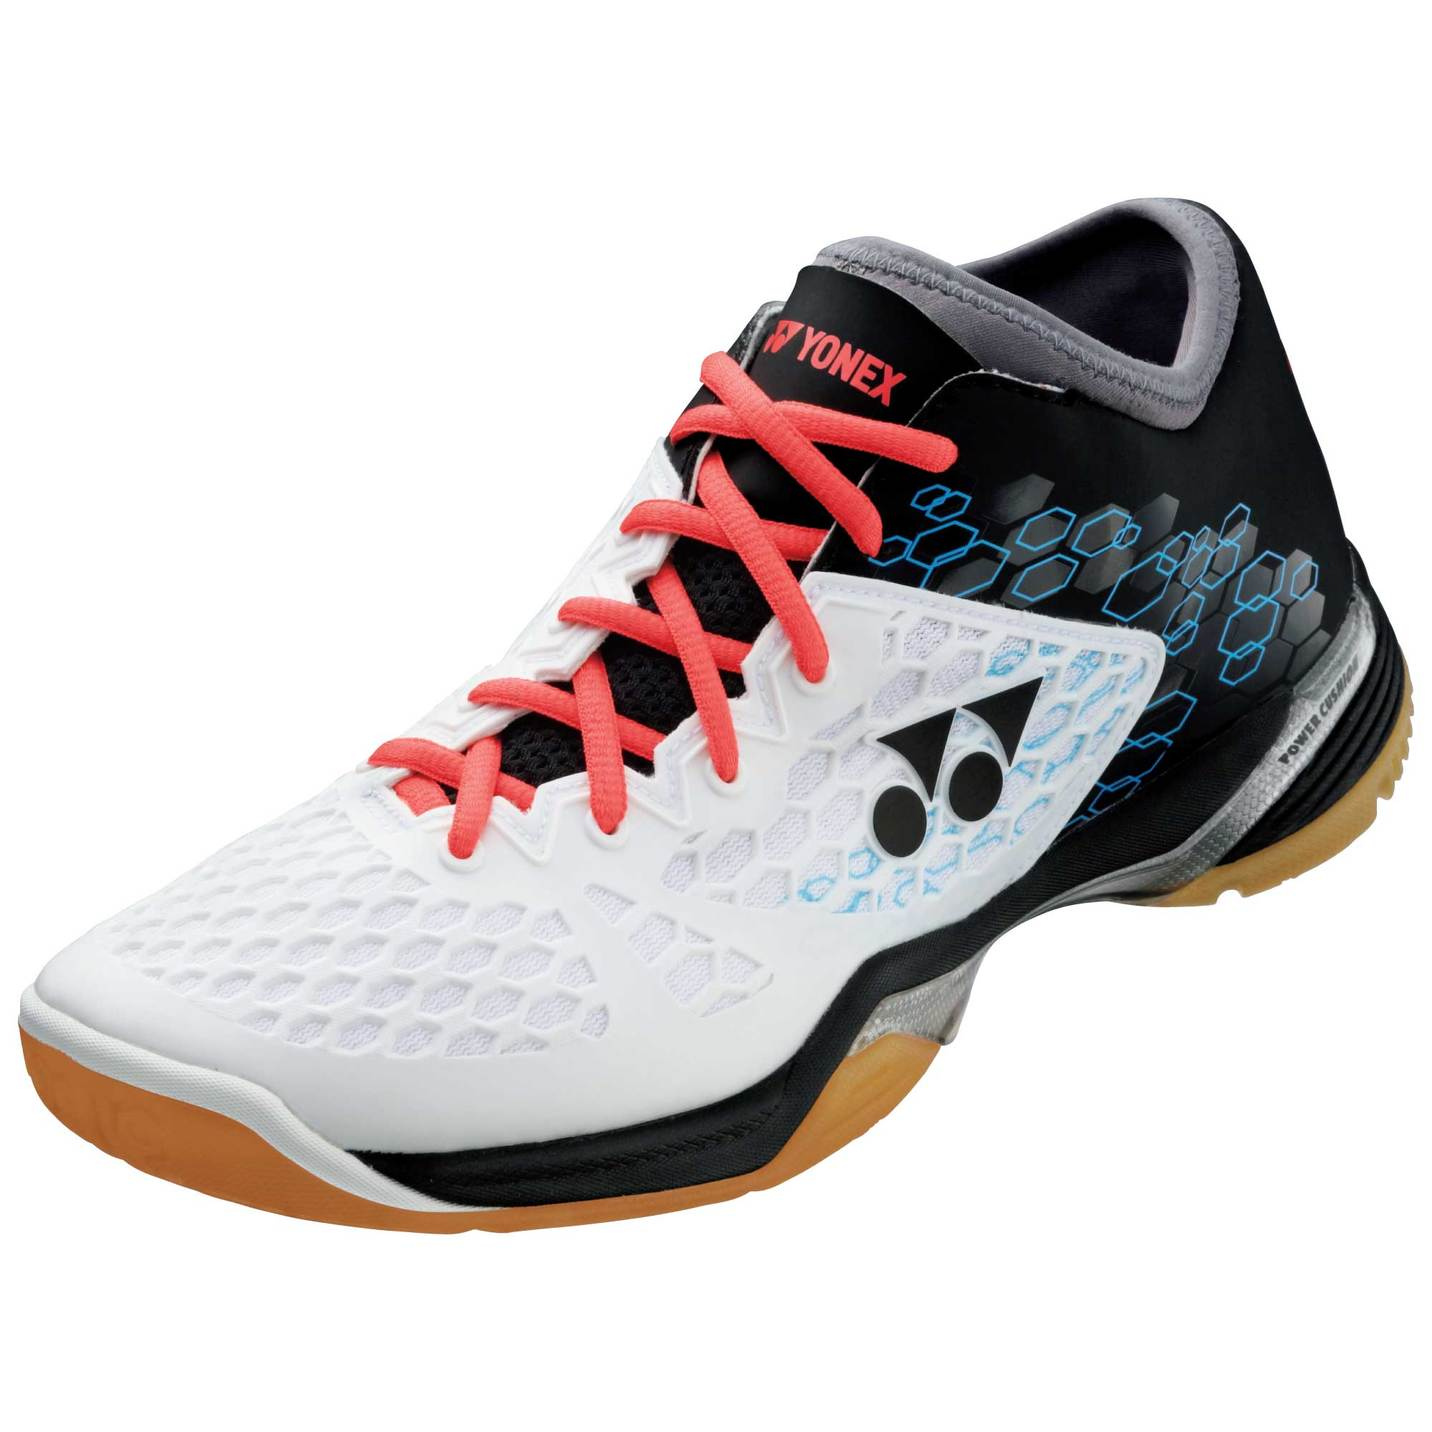 Black And White Badminton Shoes